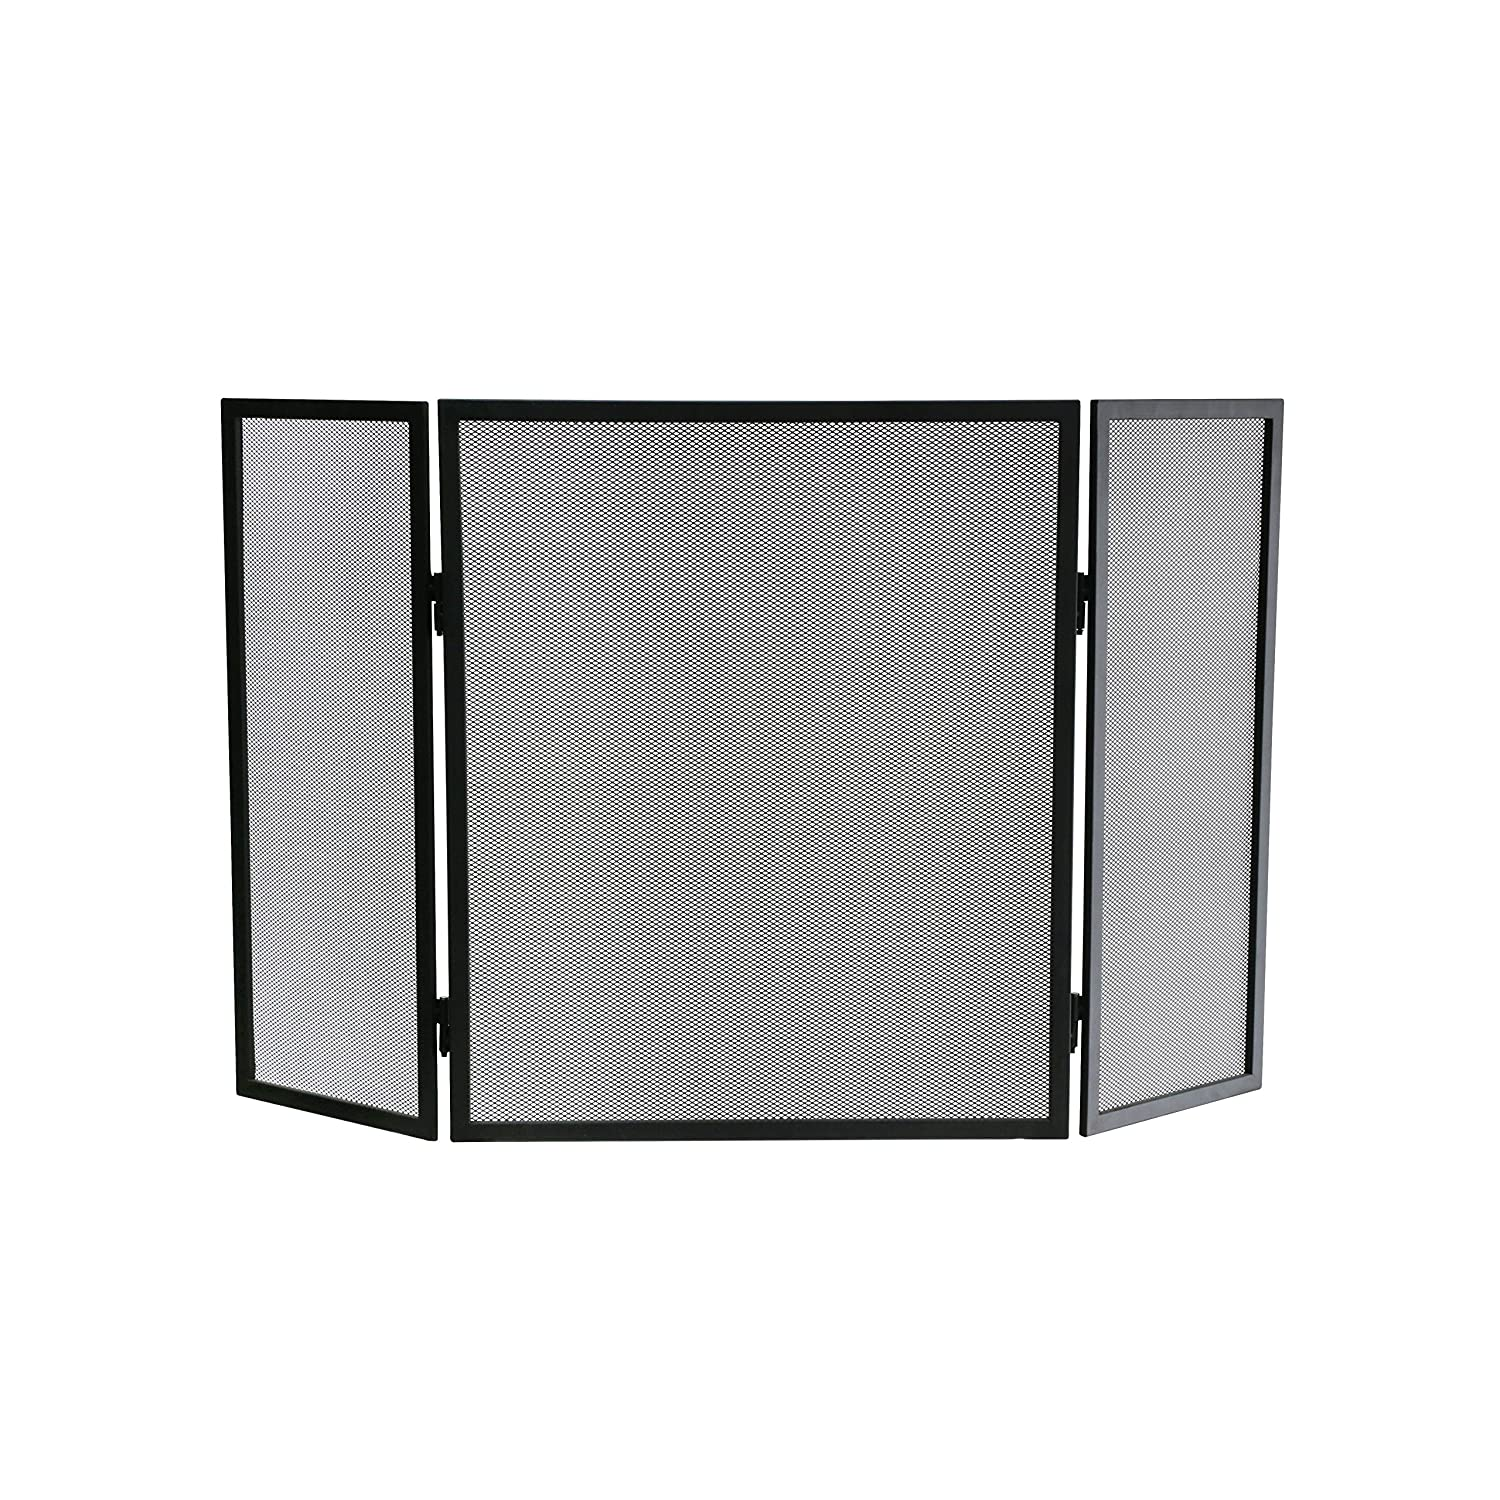 Kamino-Flam Fireplace Spark Guard, Powder-coated Iron Fire Screen with Stainless Steel Fine Grid, Fireguard for Fireplace and Stove, Free-standing 3-fold Surround Screen, approx. 96.5x2x61cm, Black Kamino - Flam 125401